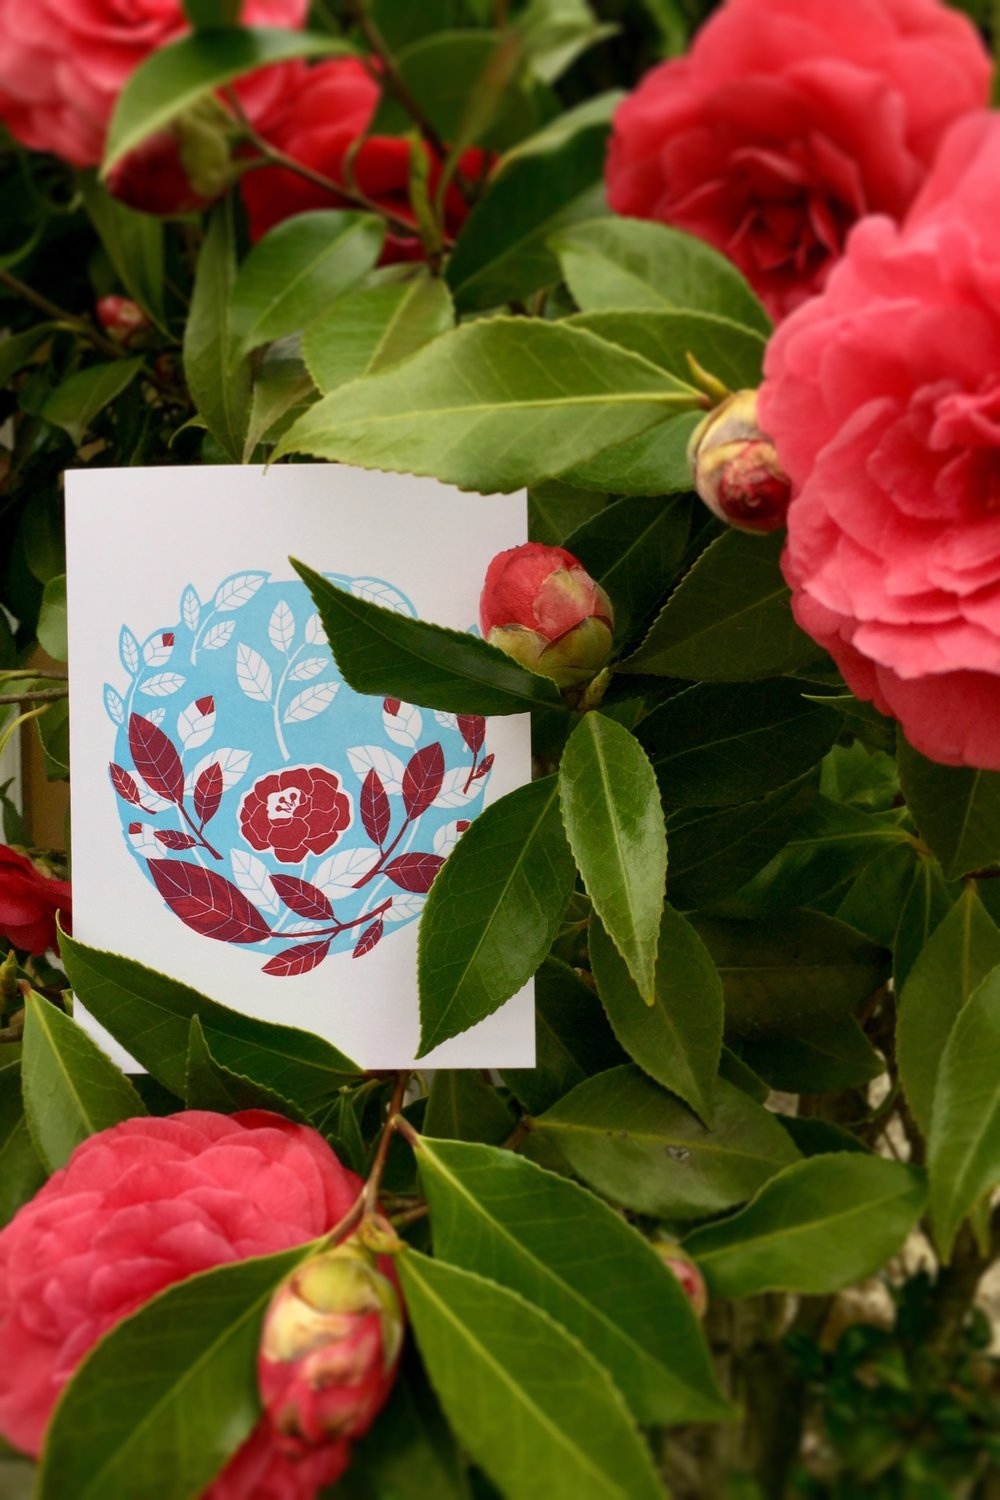 Tiger Food Press camellia card in the resident camellia shrub